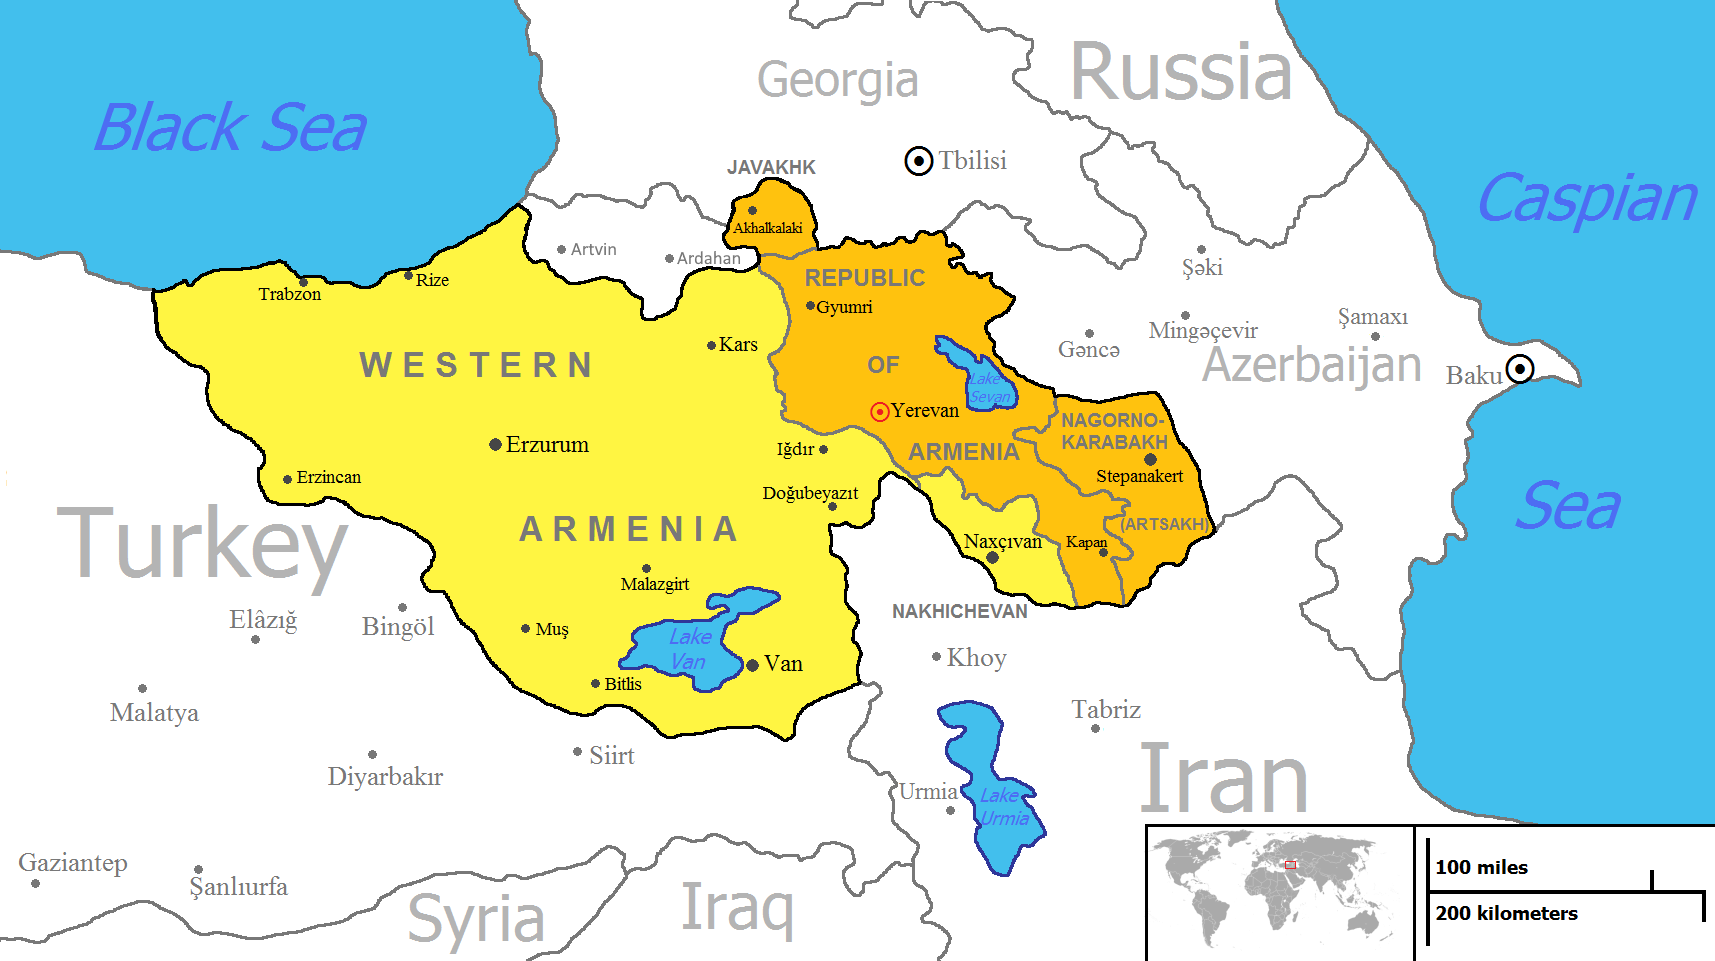 http://upload.wikimedia.org/wikipedia/commons/d/d7/United_Armenia.png